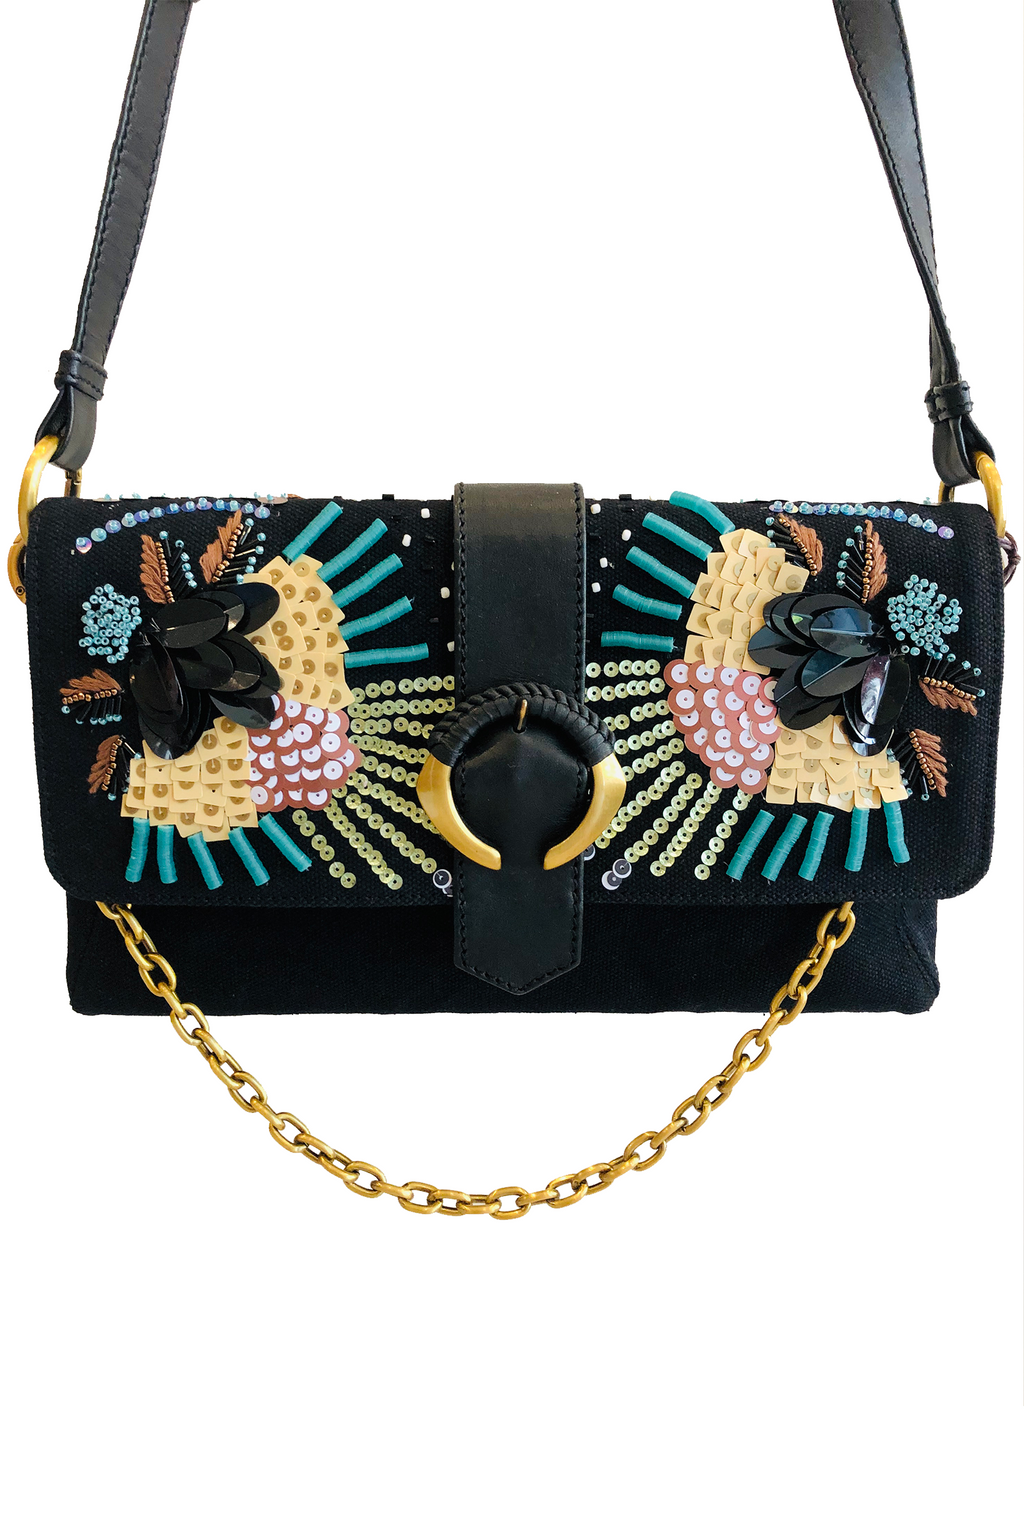 Maliparmi Handbeaded Abstract Flower Crossbody Bag in Black